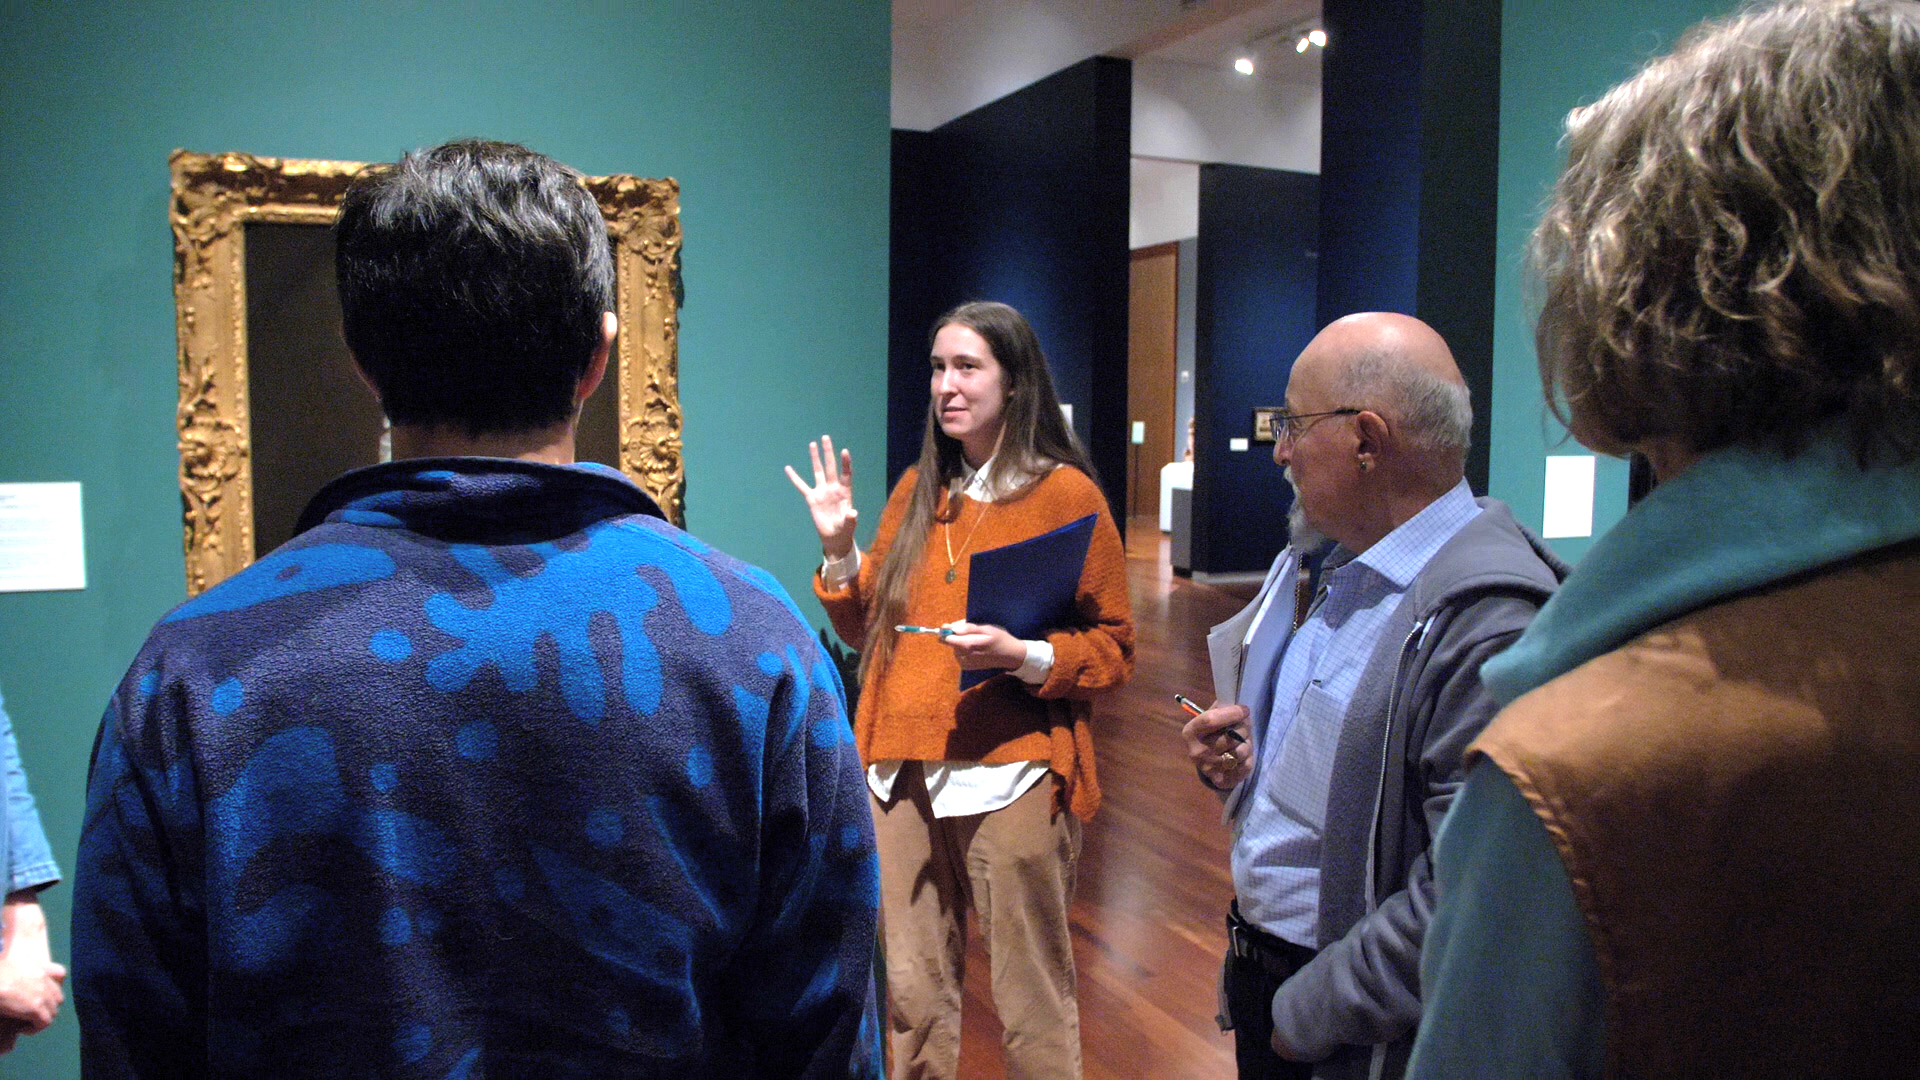 Art Ambassadors tour lead by woman with long hair in orange sweater, three people have the back to camera, European gallery walls are green